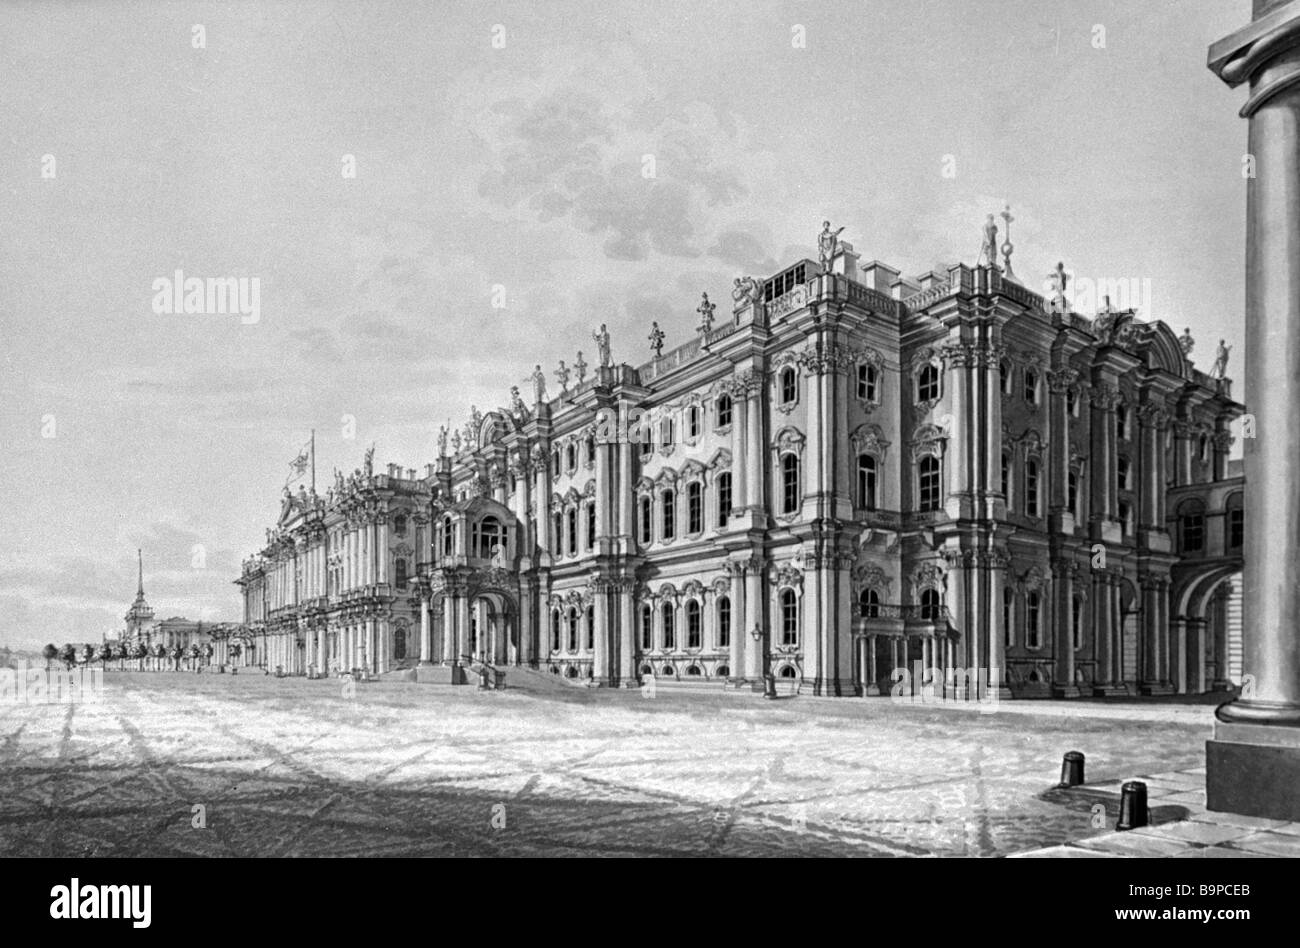 Reproduction of nineteenth century engraving The Winter Palace in St Petersburg - Stock Image